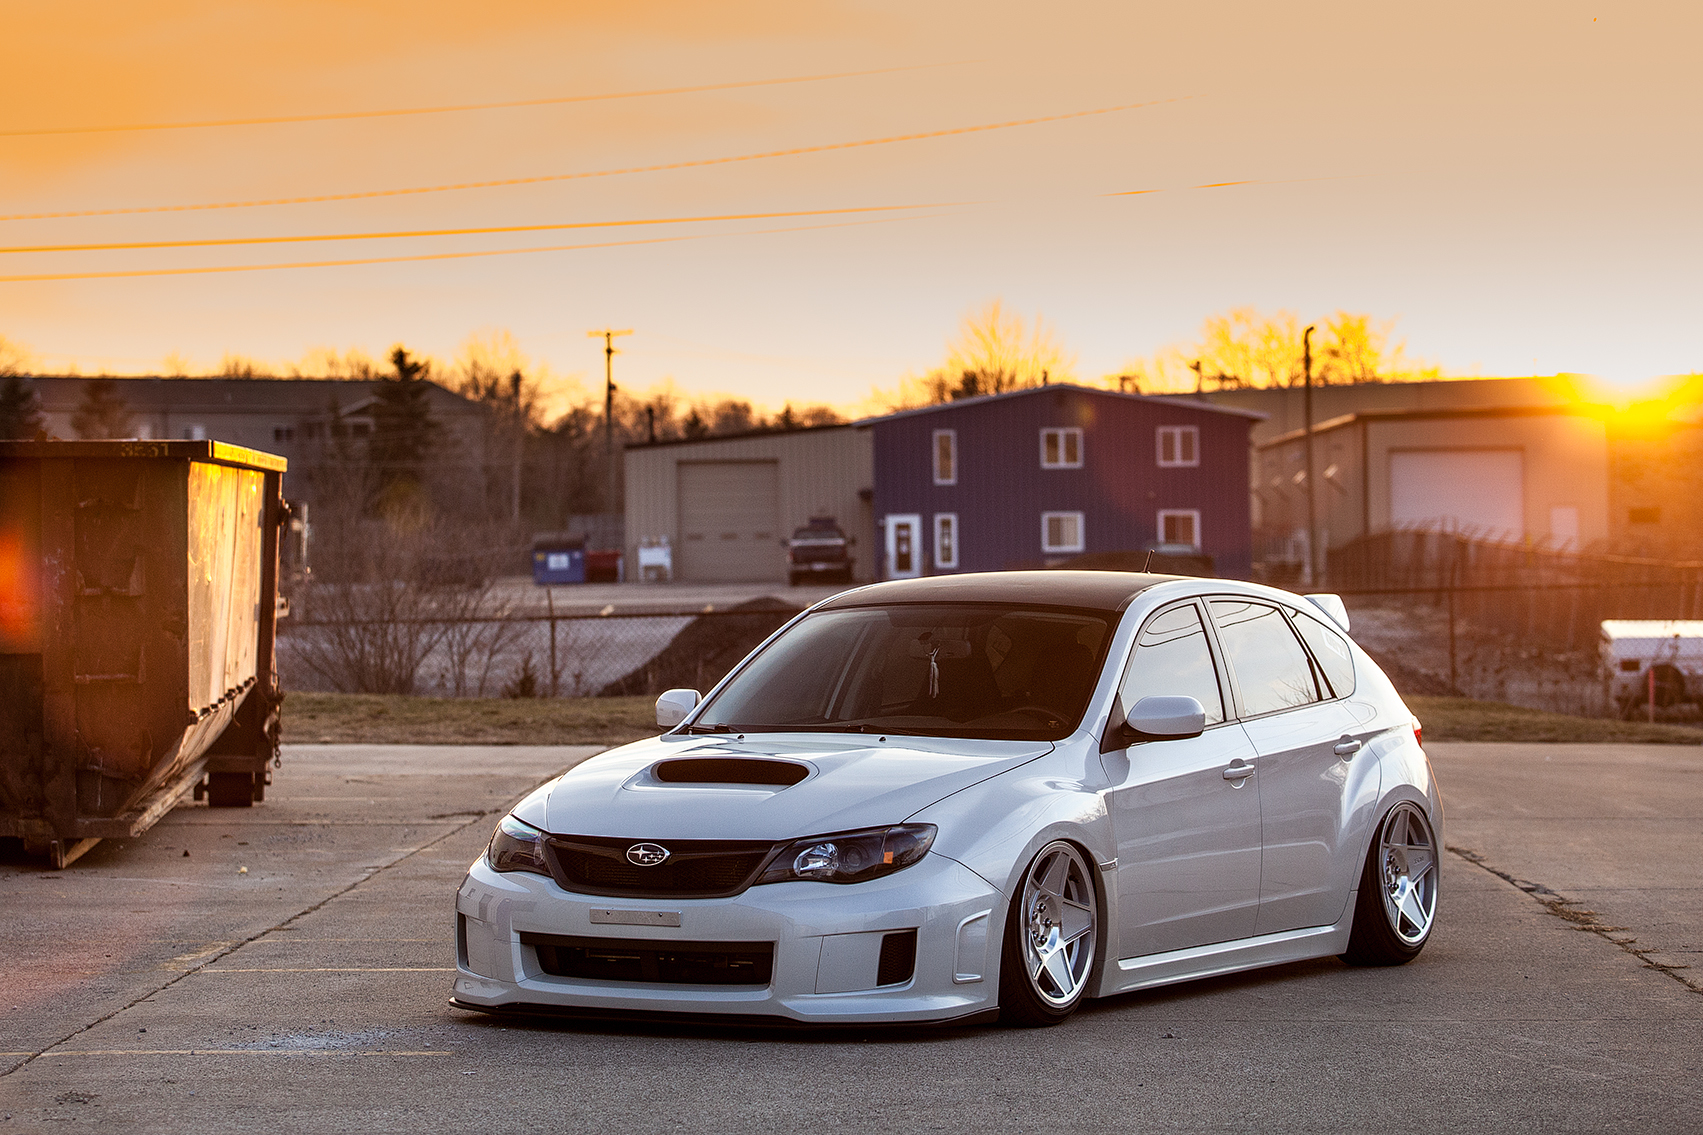 Who Is Running 9 Quot Wheels On A Wrx Wagon Post Your Setup